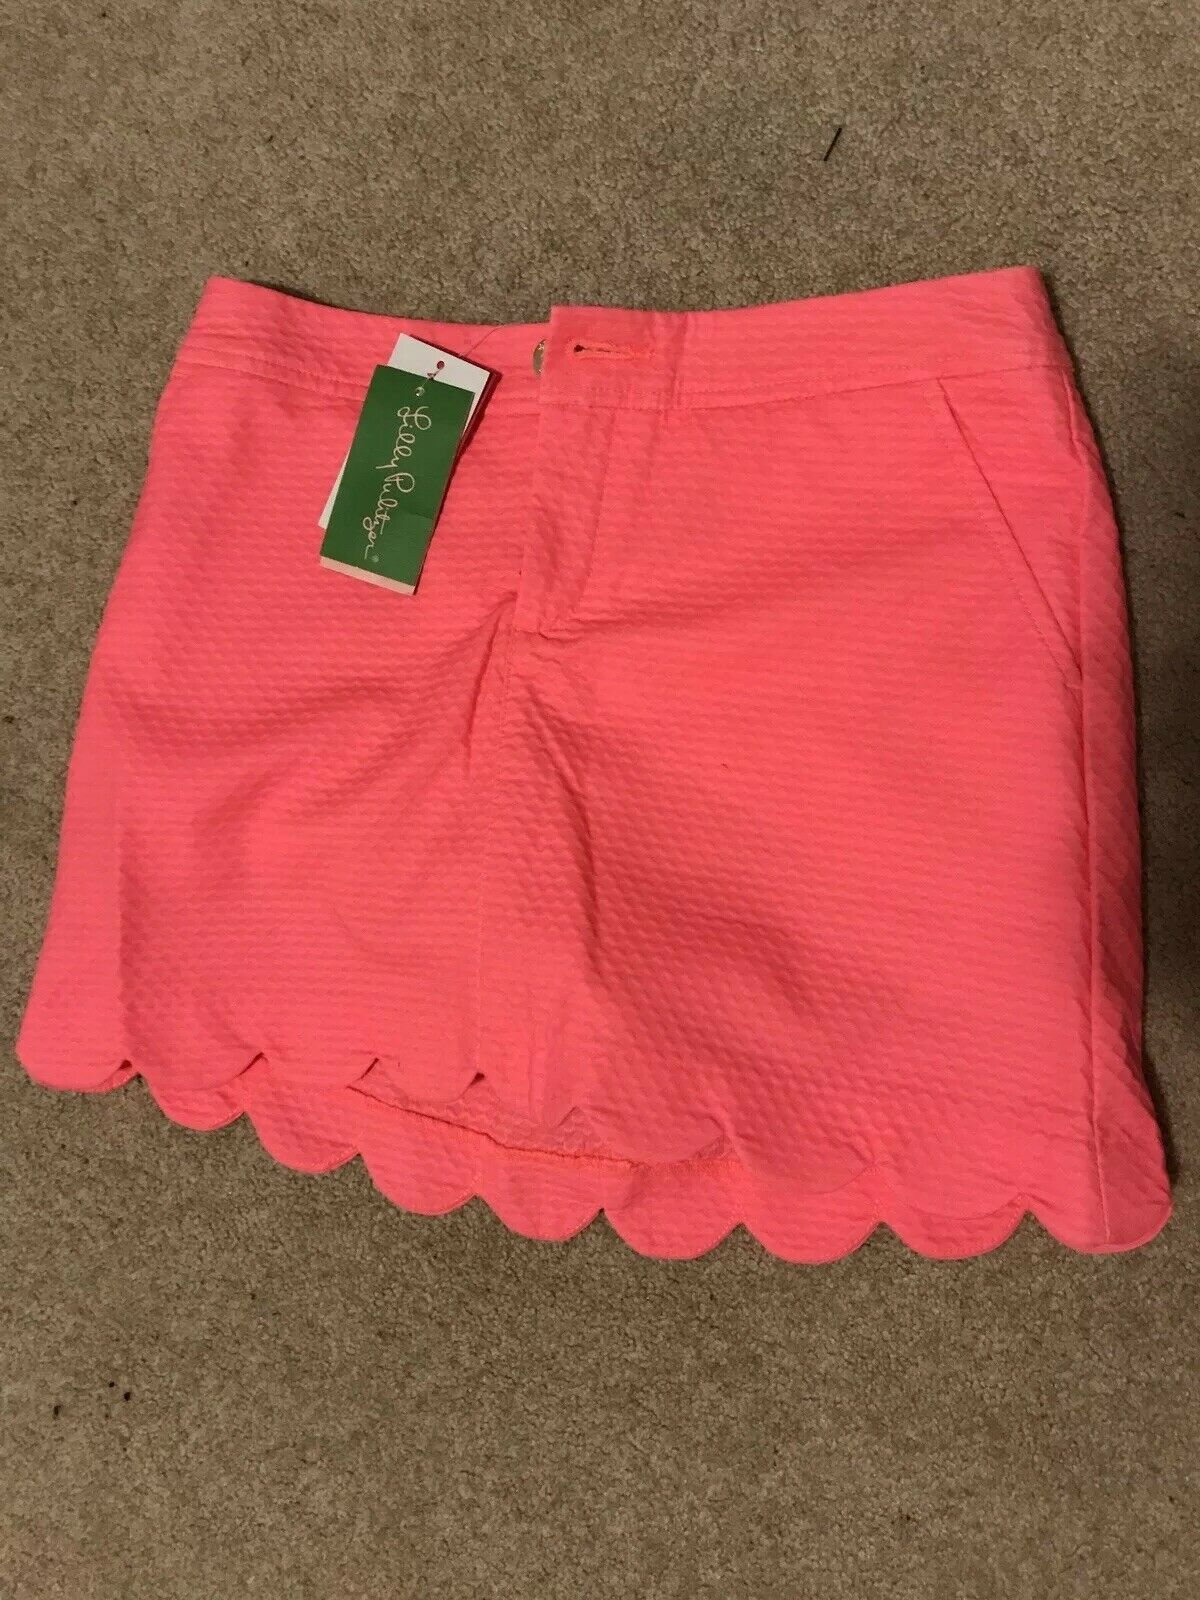 NEW WITH TAGS LILLY PULITZER  COLETTE SKORT CORAL REEF Größe 0